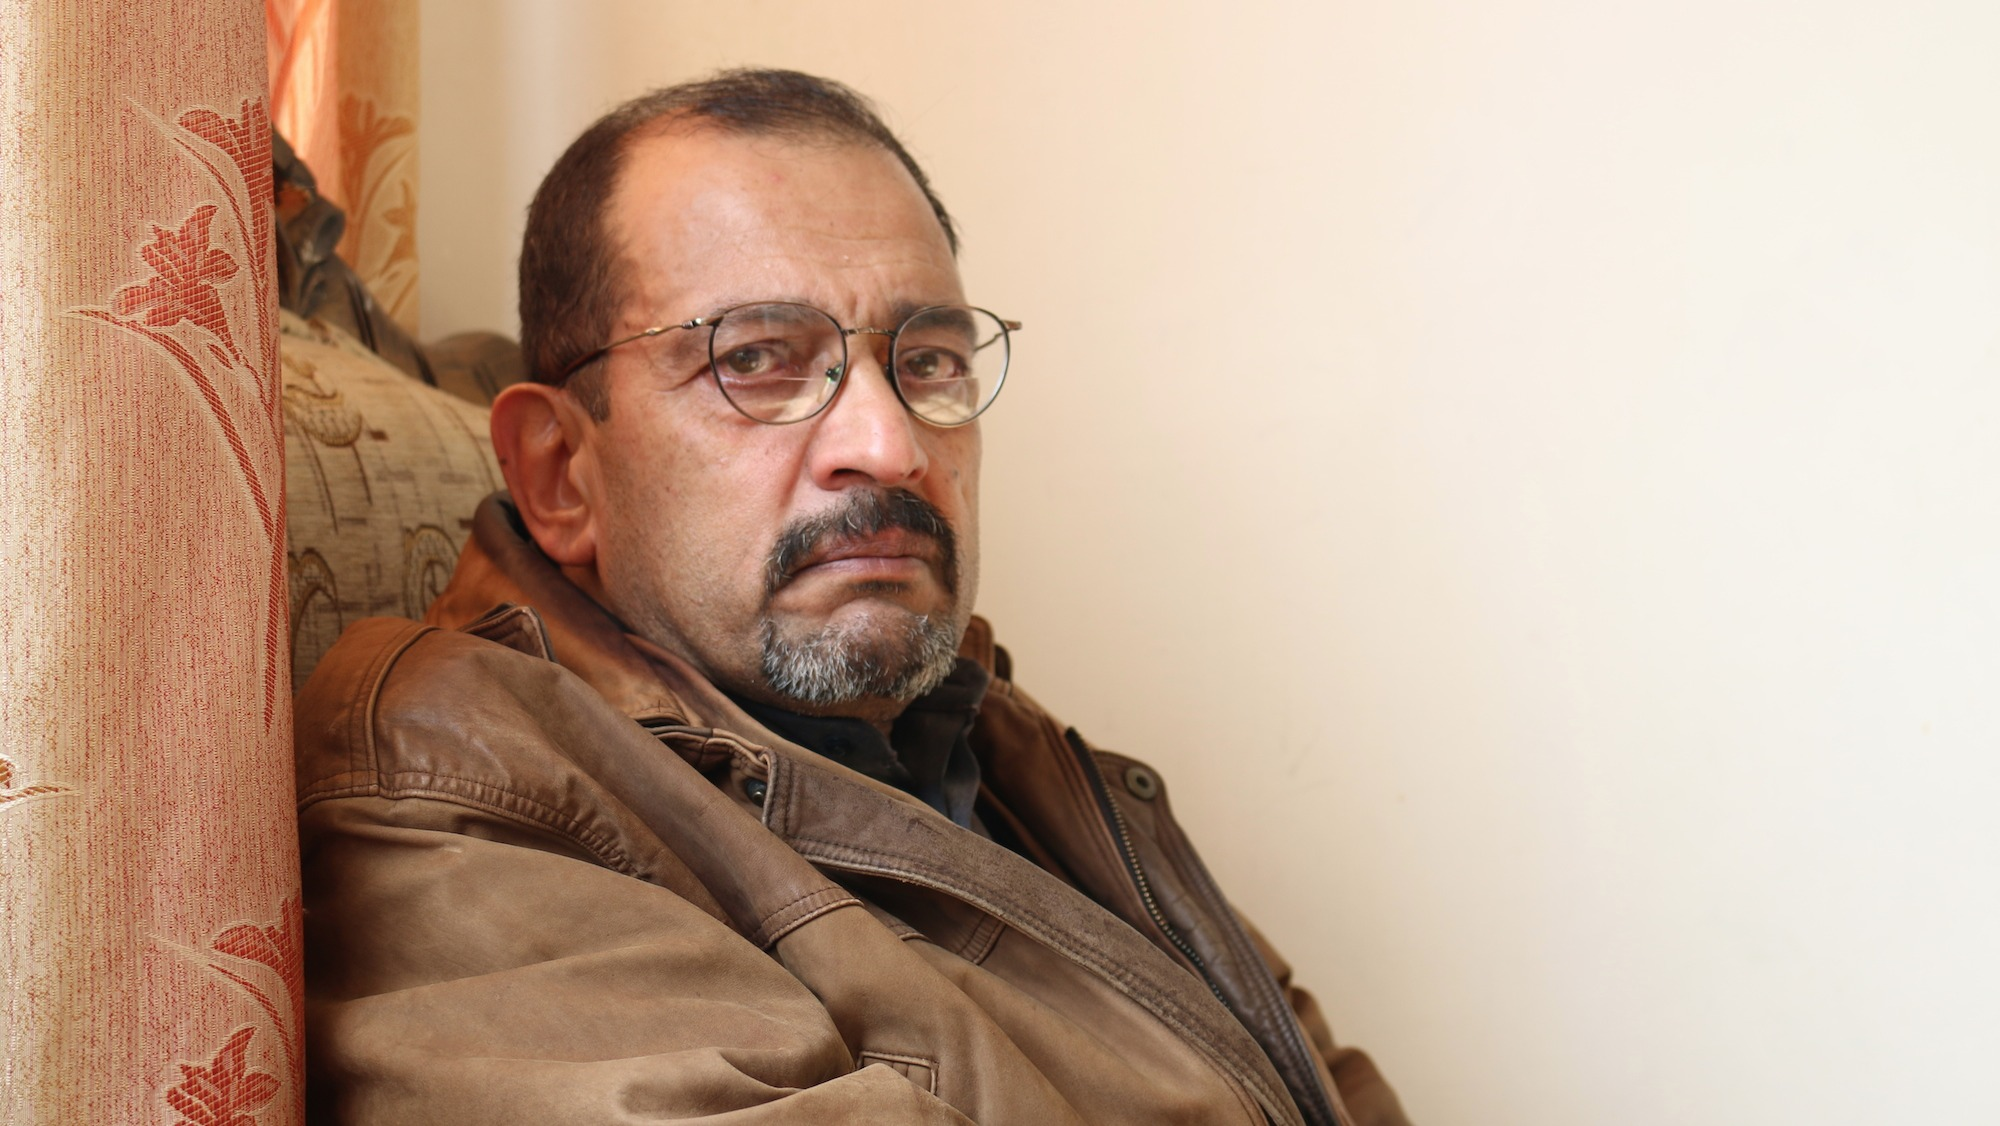 "Abdul Majeed Alhamdny, 59, fled to Jordan from Iraq in 2010 as a result of threats to his life. He was the leader of the Sahawat or ""Awakening Councils"" in Fallujah during the American occupation of Iraq."